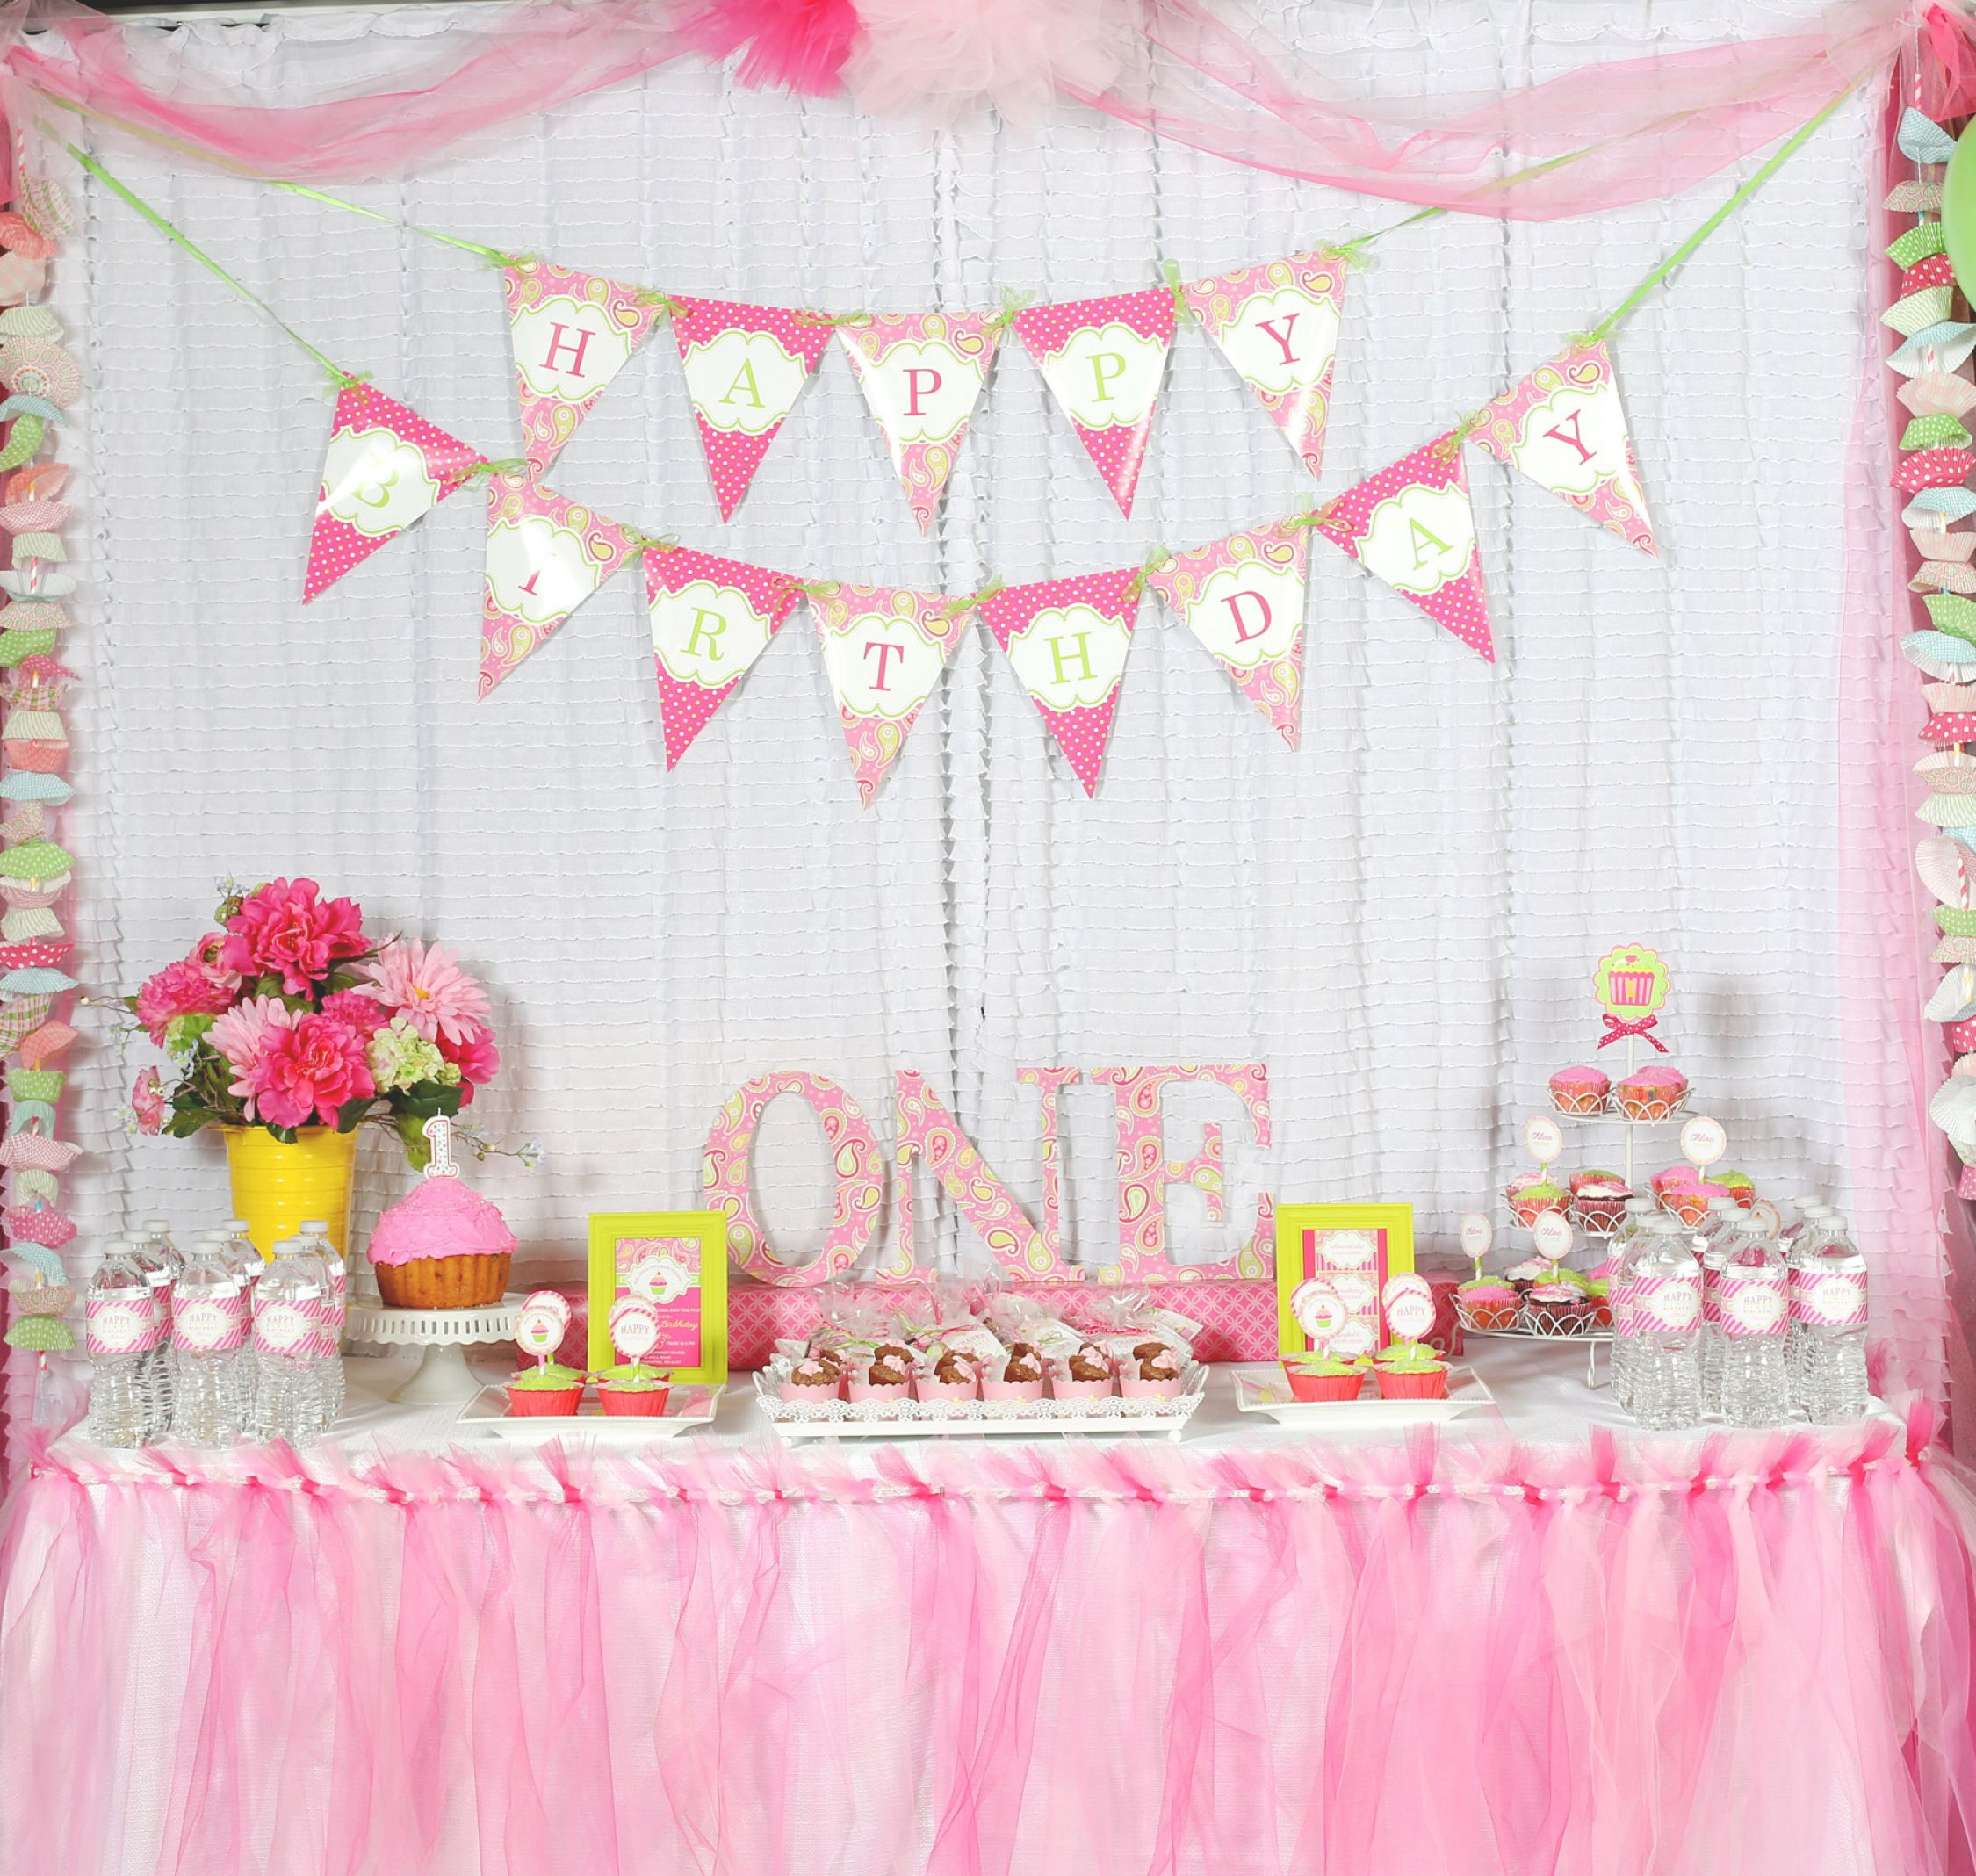 1st Birthday Party Decoration Ideas At Home - Elitflat